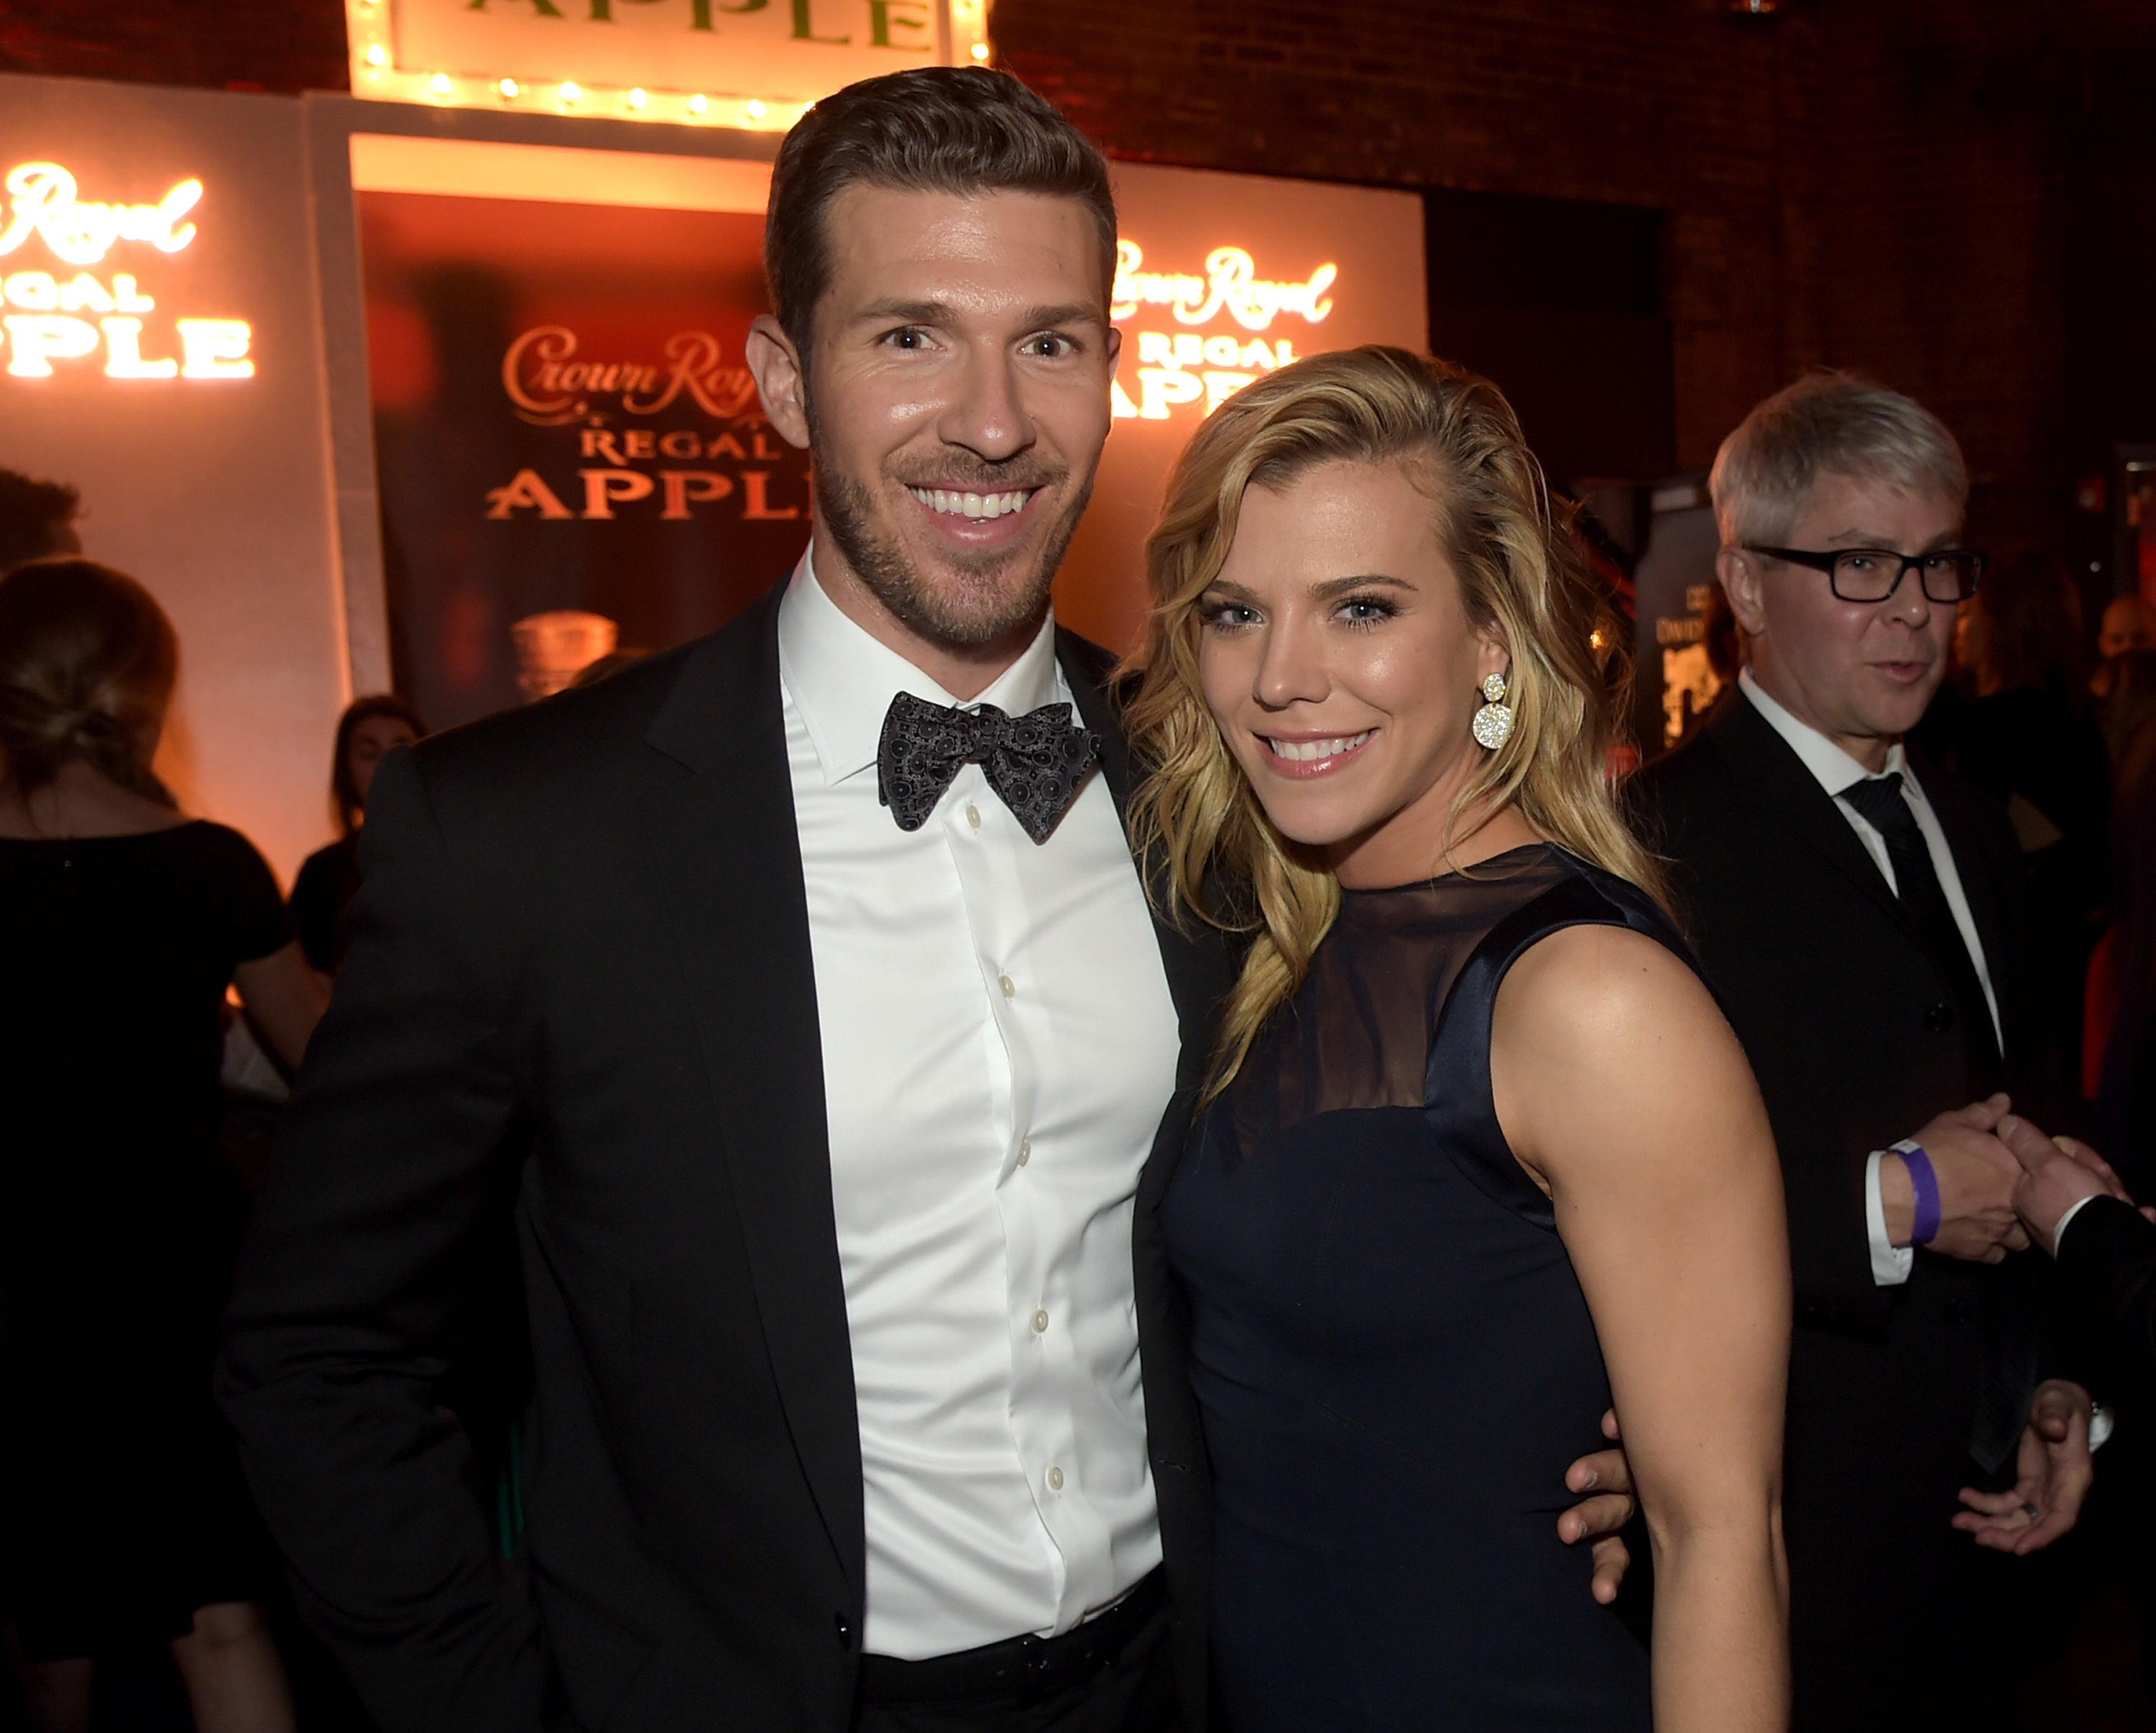 The Band Perry's Kimberly Perry Splits From Husband Jp Arencibia After 4 Years Of Marriage Entertainment Tonight: Kimberly Perry Wedding Dress At Reisefeber.org